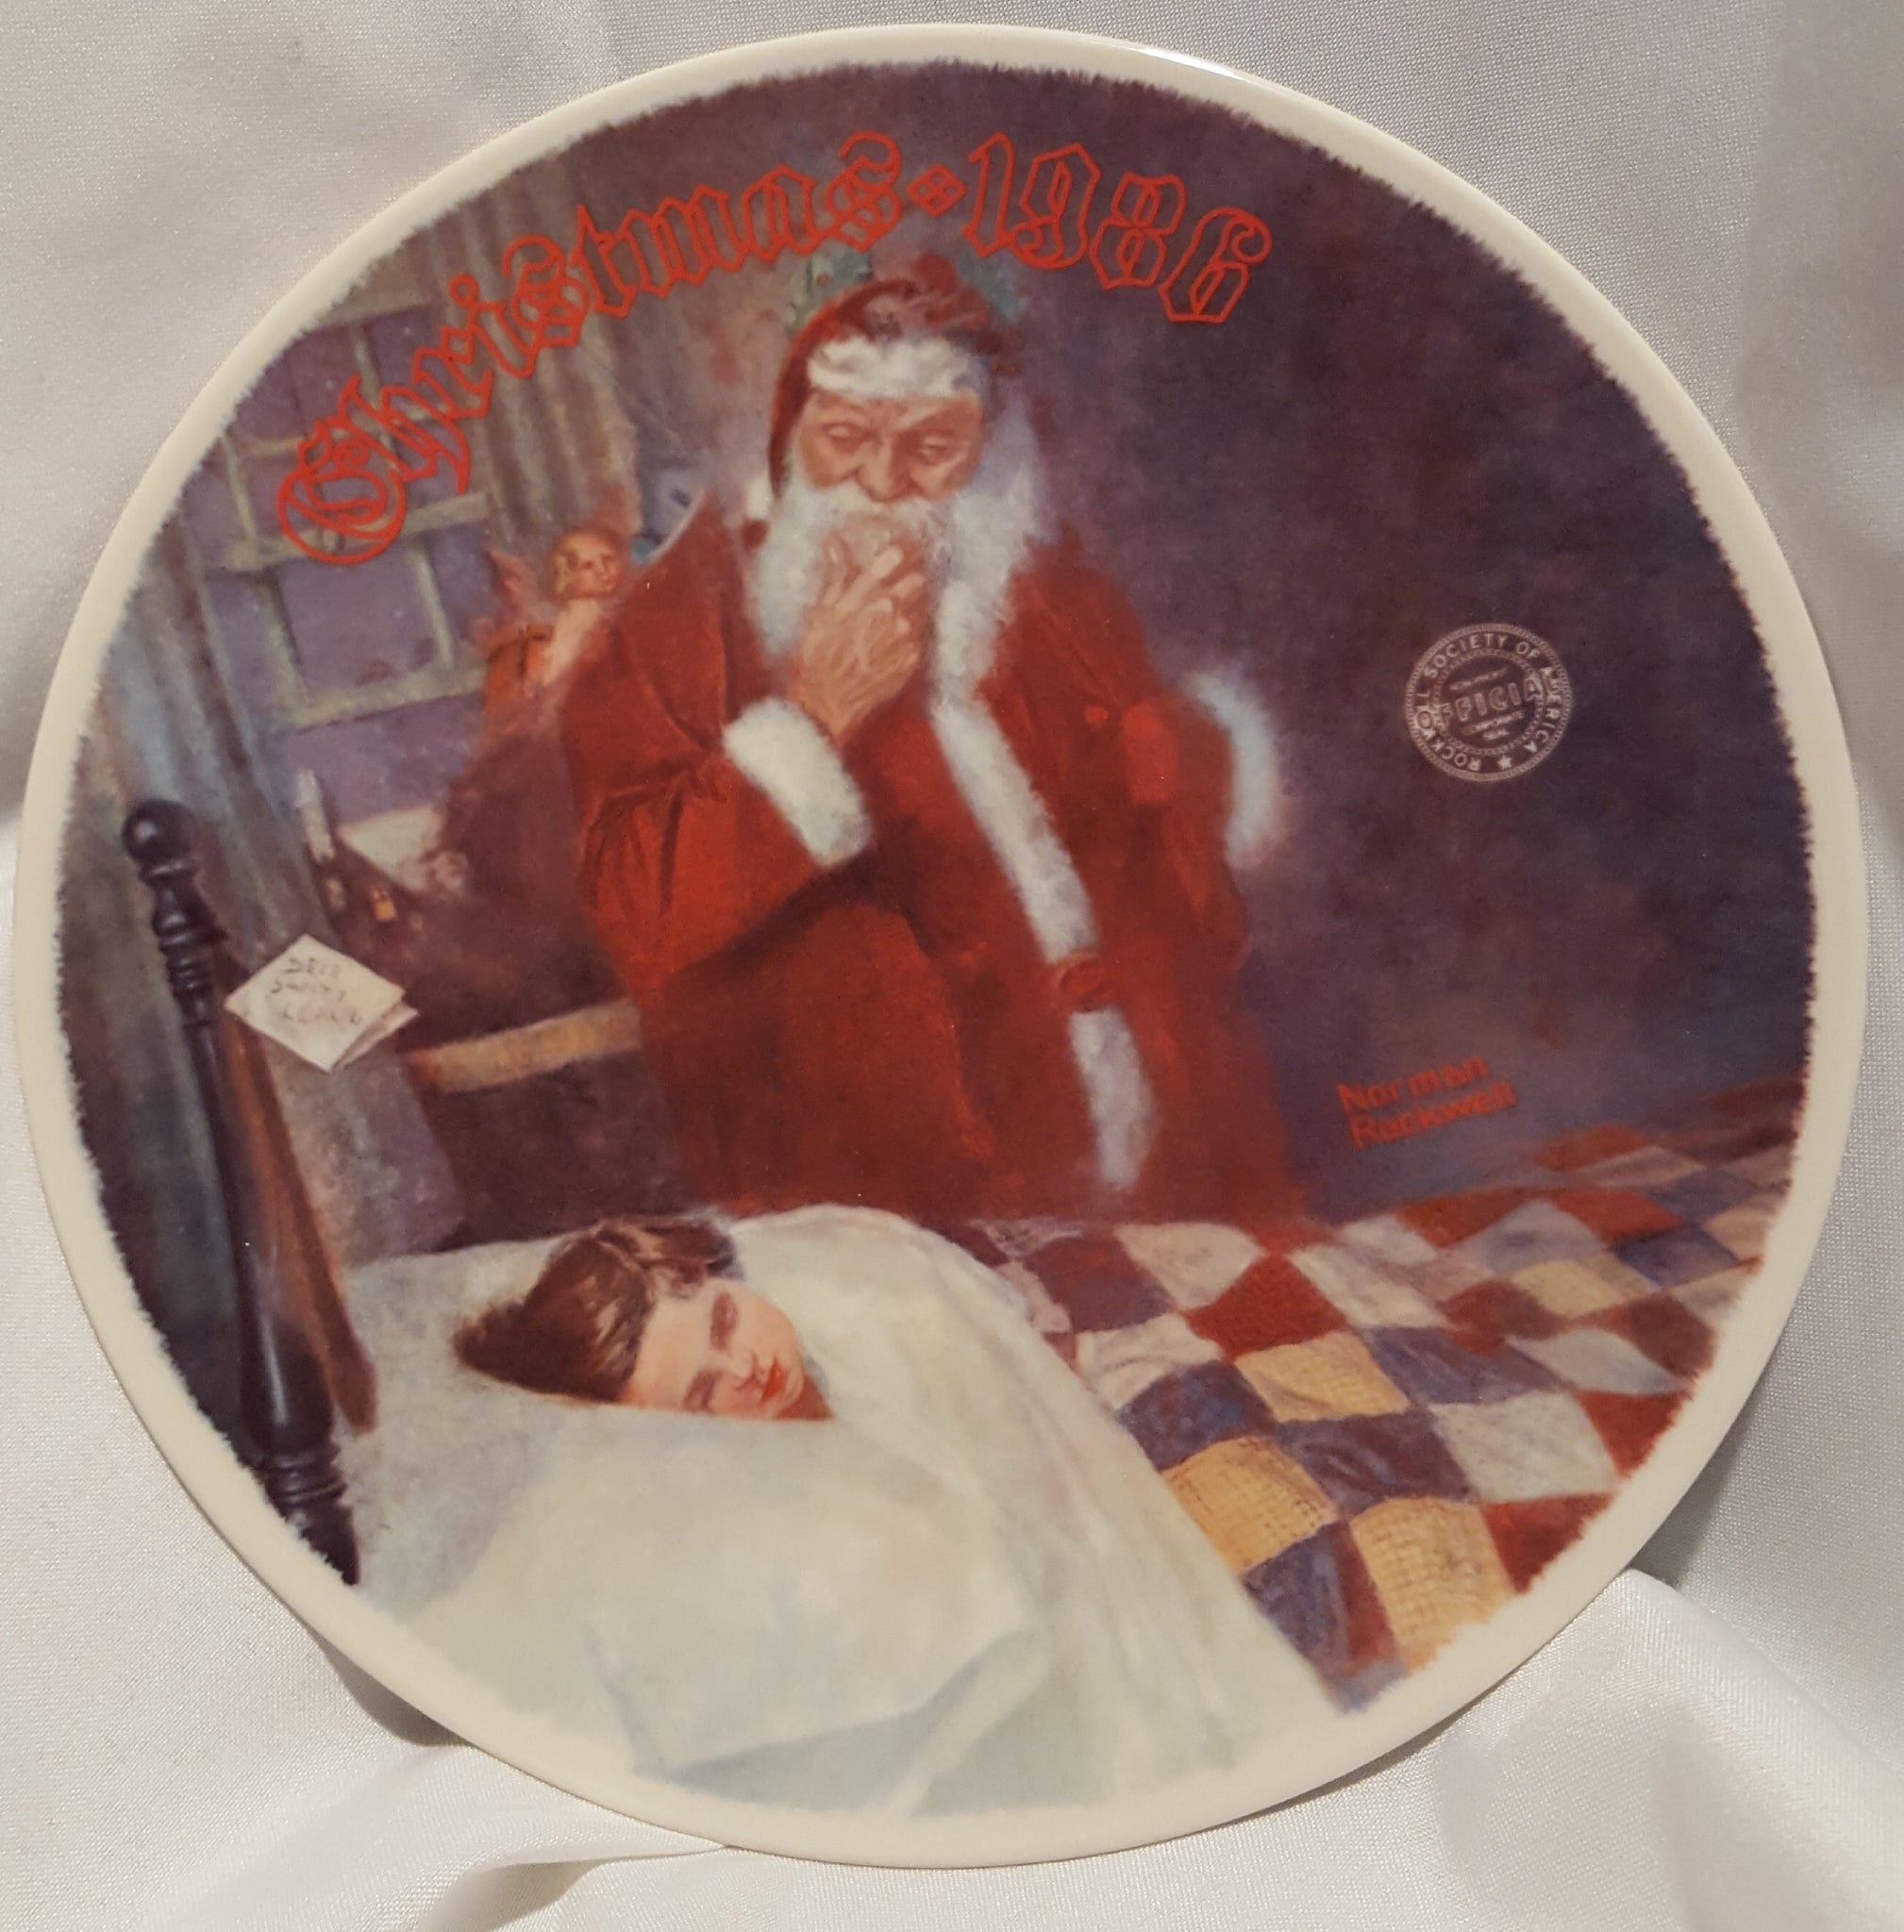 Knowles - Norman Rockwell Christmas 1986 Plate Deer Santy Claus ...